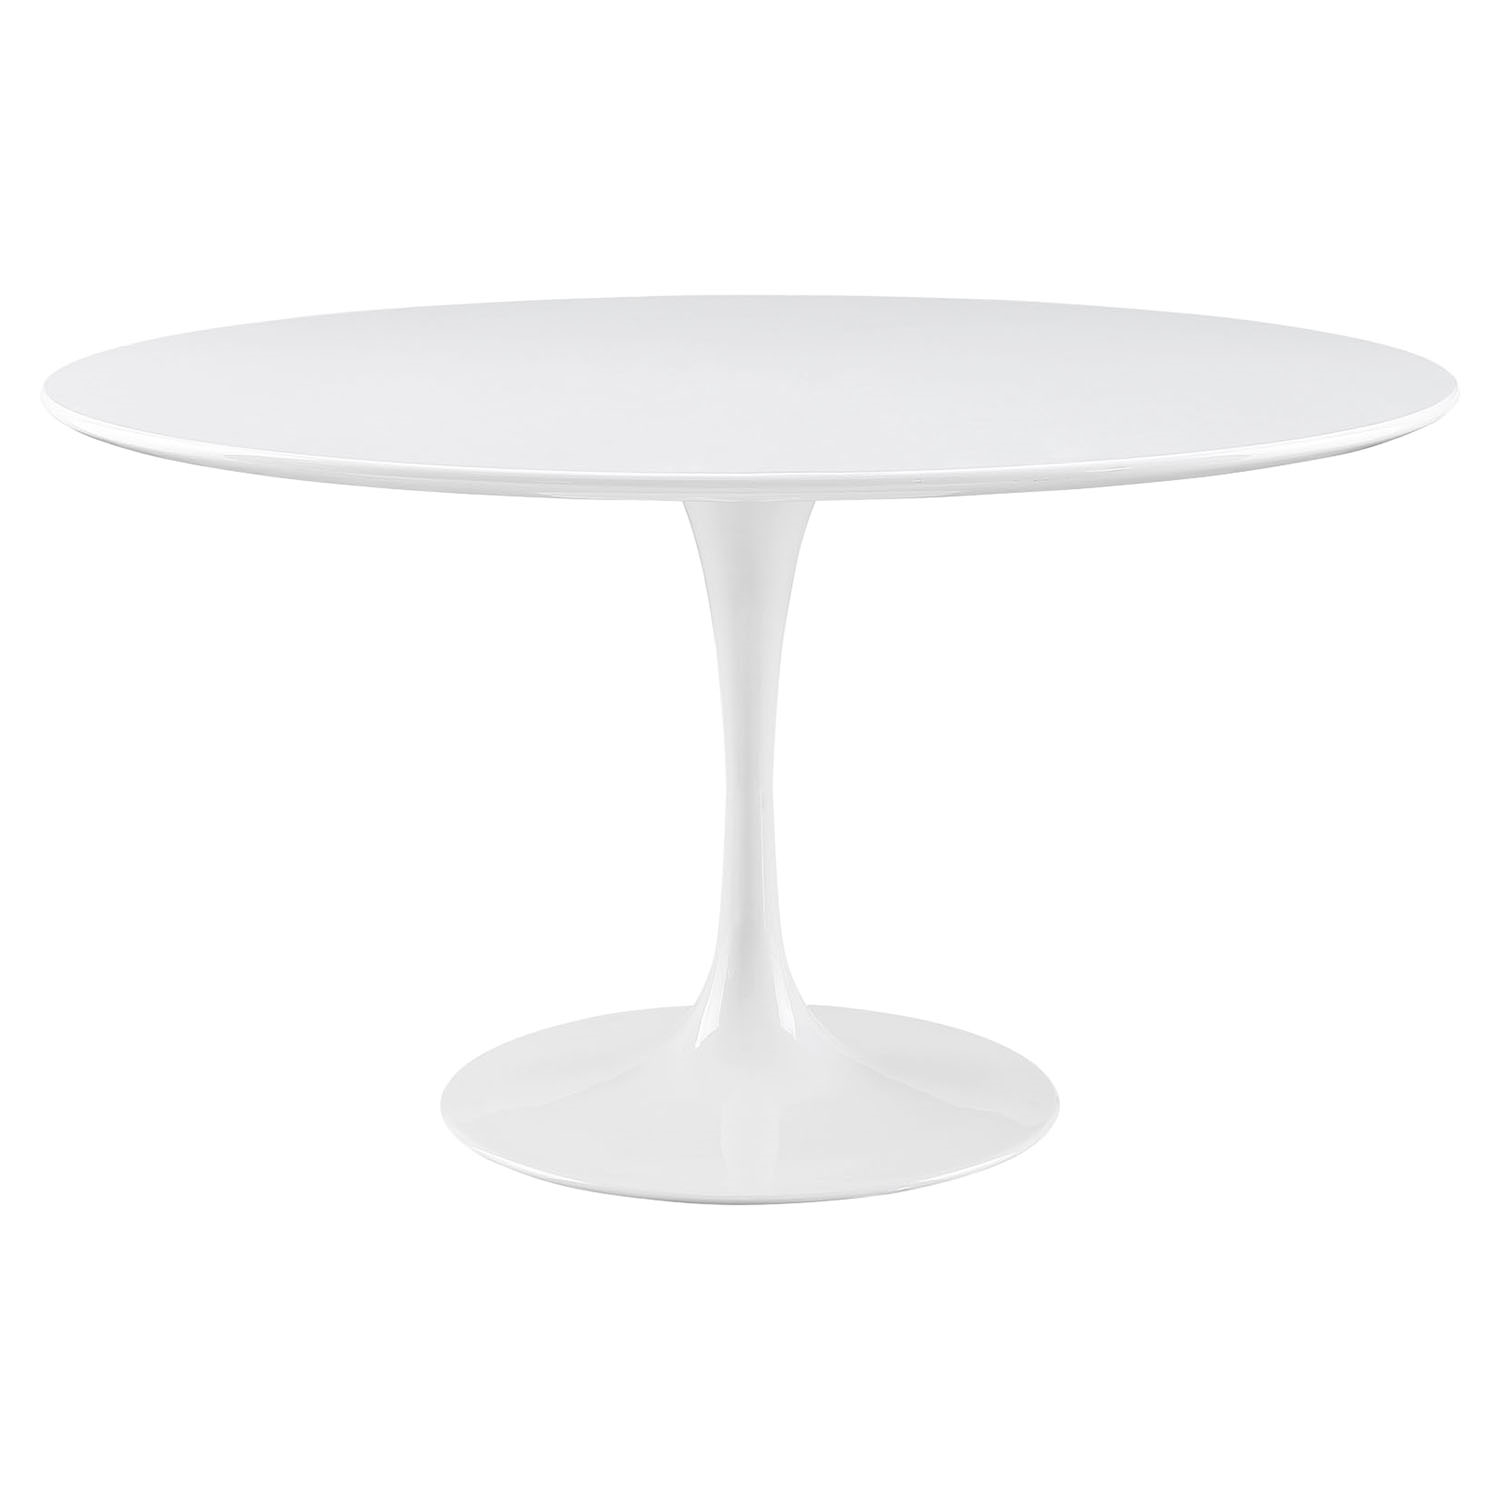 "Lippa 54"" Wood Top Dining Table - White - EEI-1119-WHI"